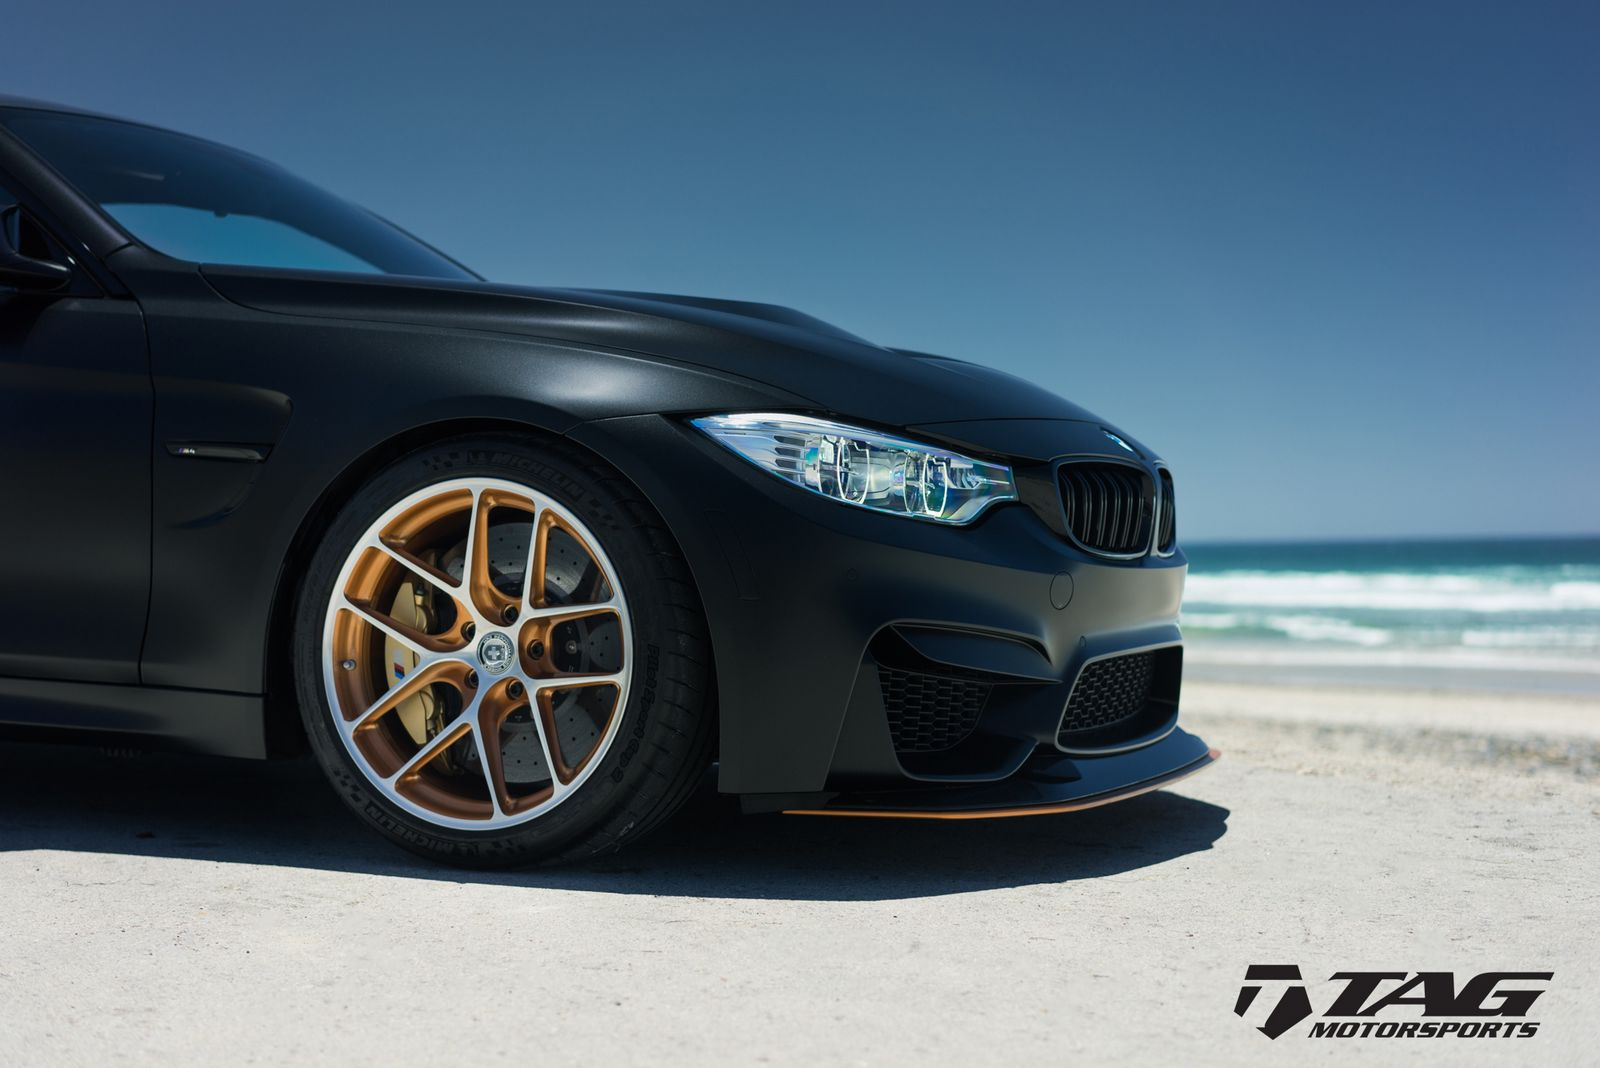 Bmw M4 Gts Looks Ready To Attack In Matte Black Carscoops